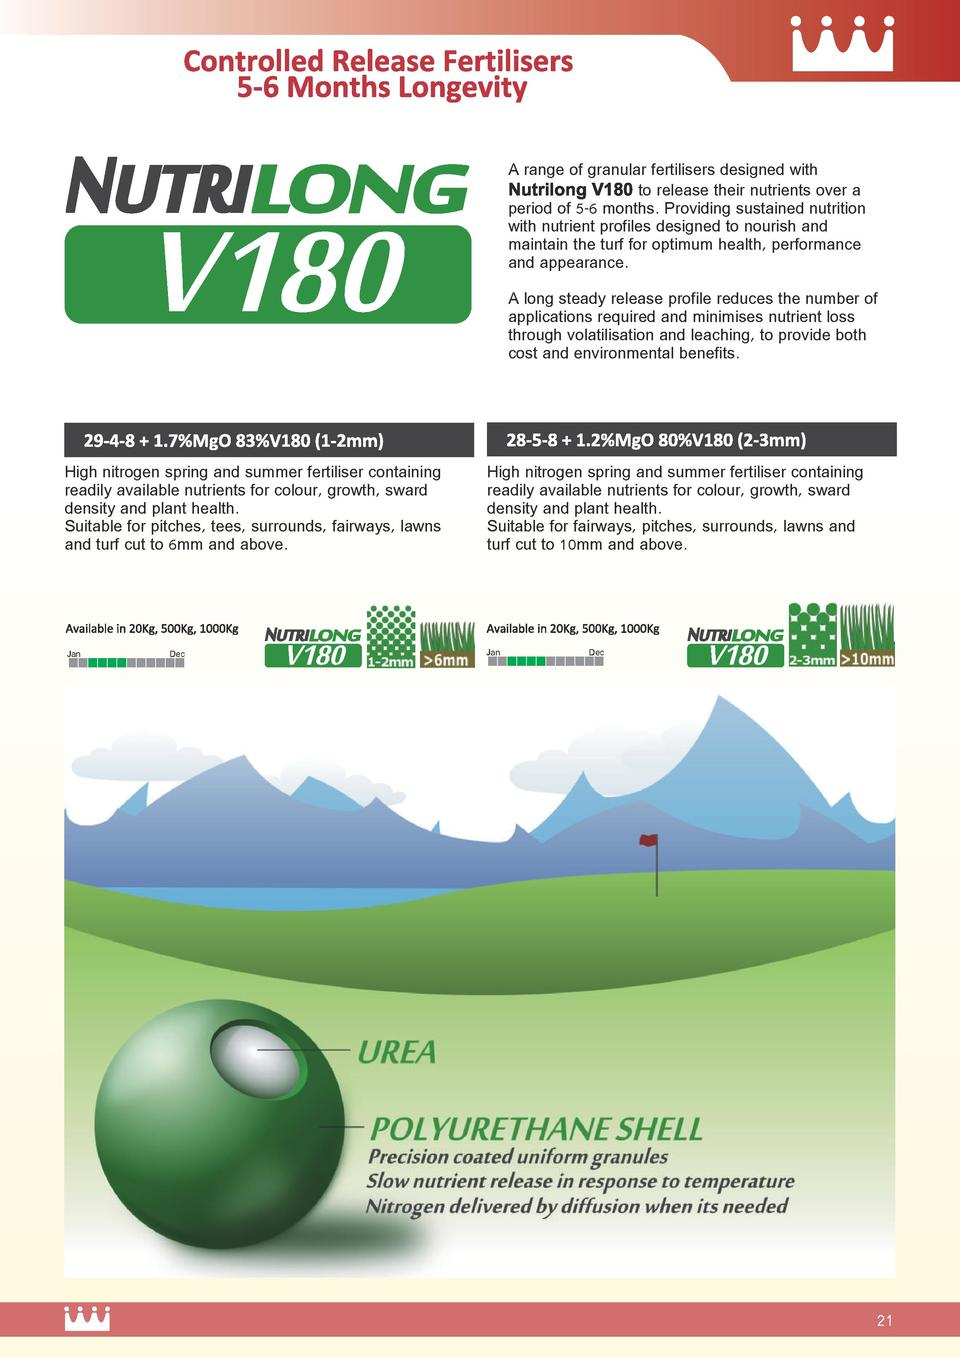 A range of granular fertilisers designed with Nutrilong V1 80 to release their nutrients over a period of 5-6 months. Prov...